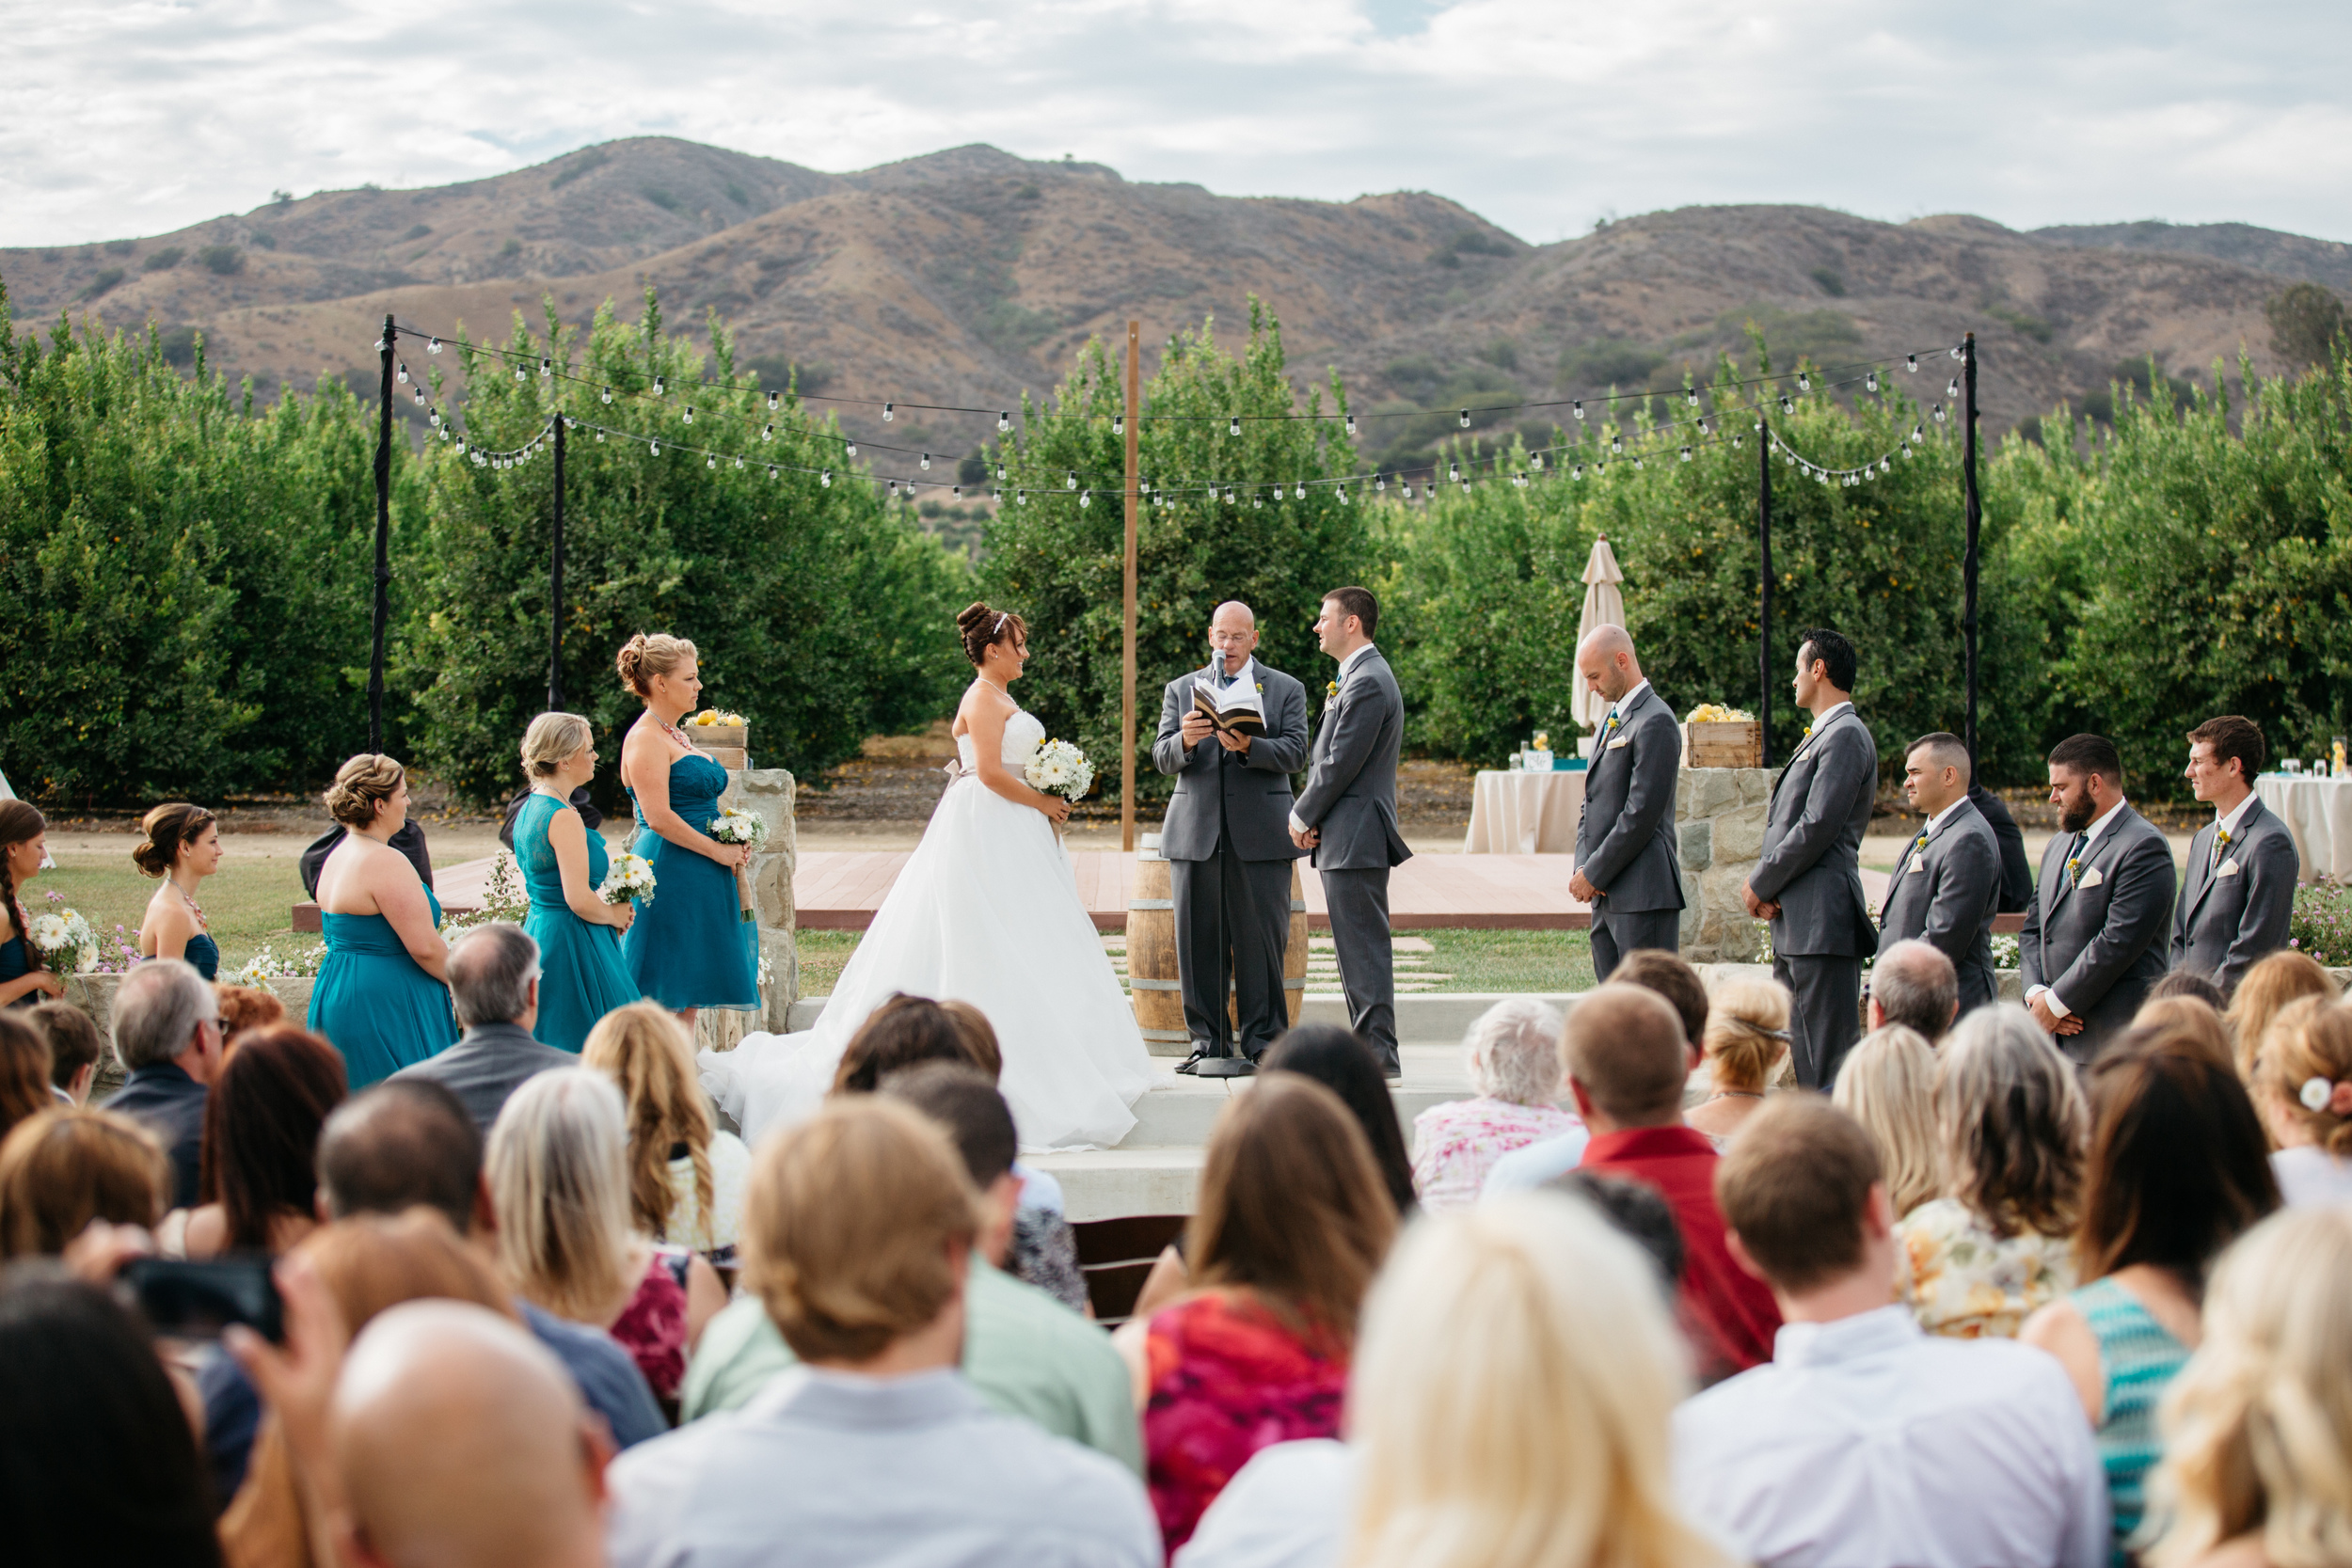 limoneira-ranch-wedding-photography-santa-paula-orchard-wedding-26.jpg